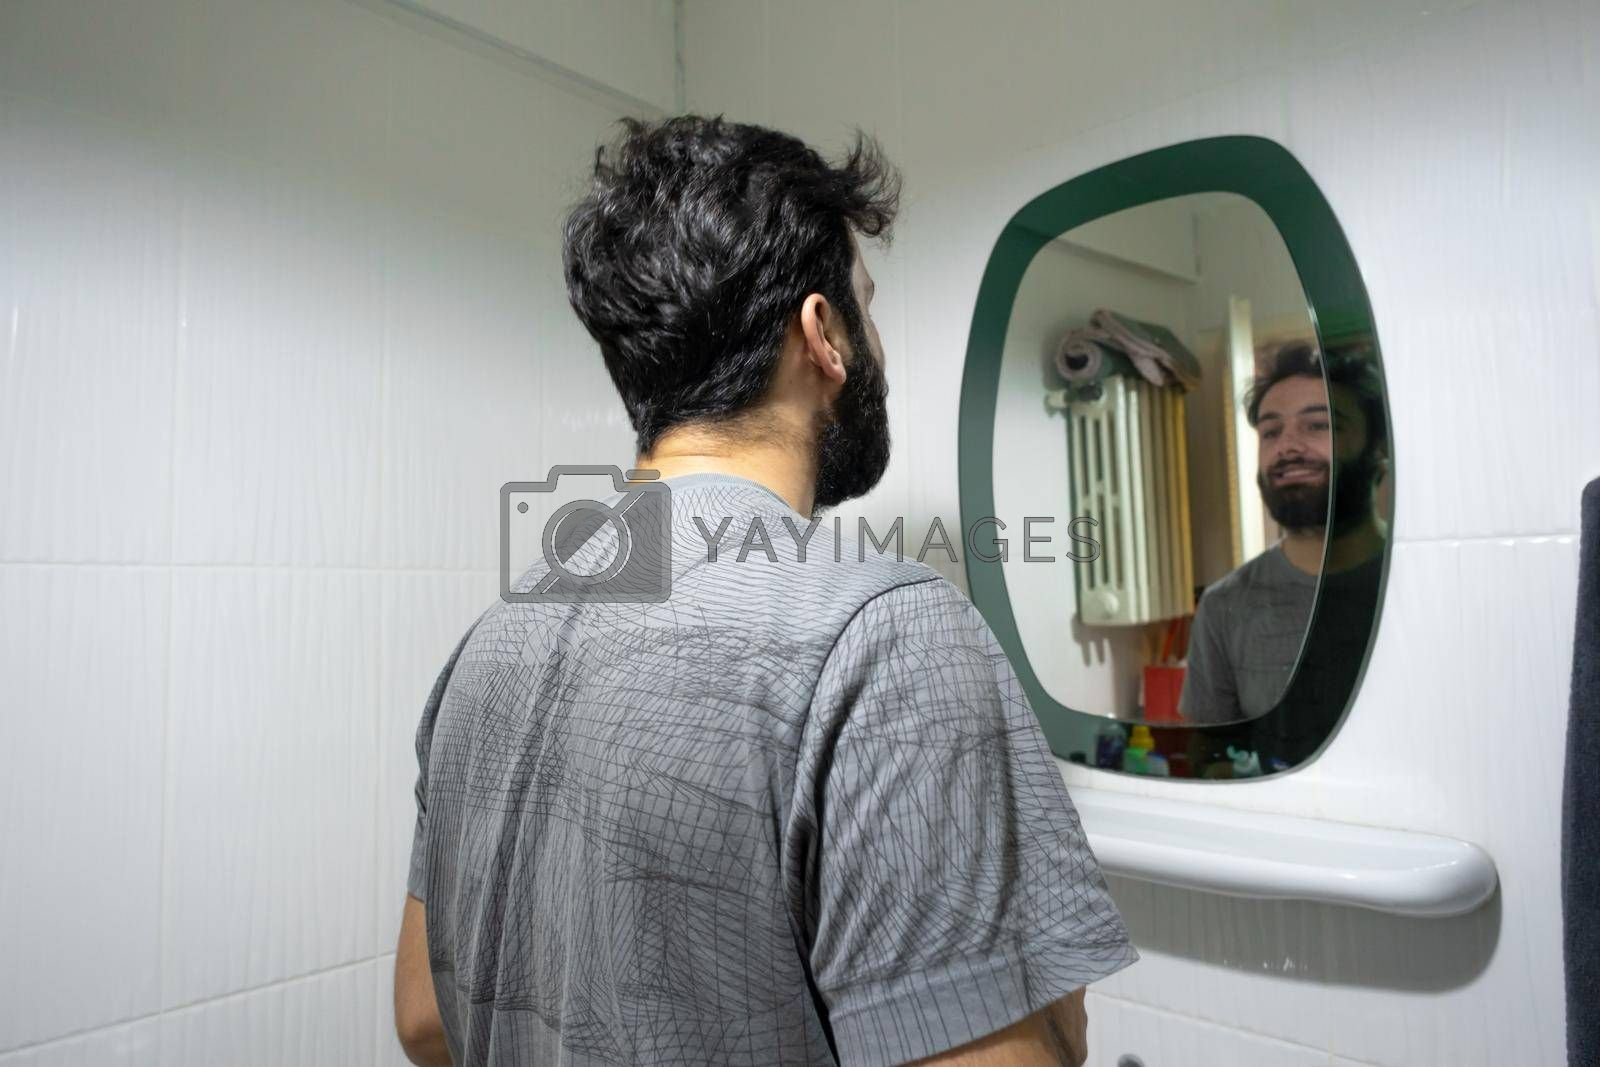 It depicts a man standing in front of a mirror in bathroom lifestyle concept